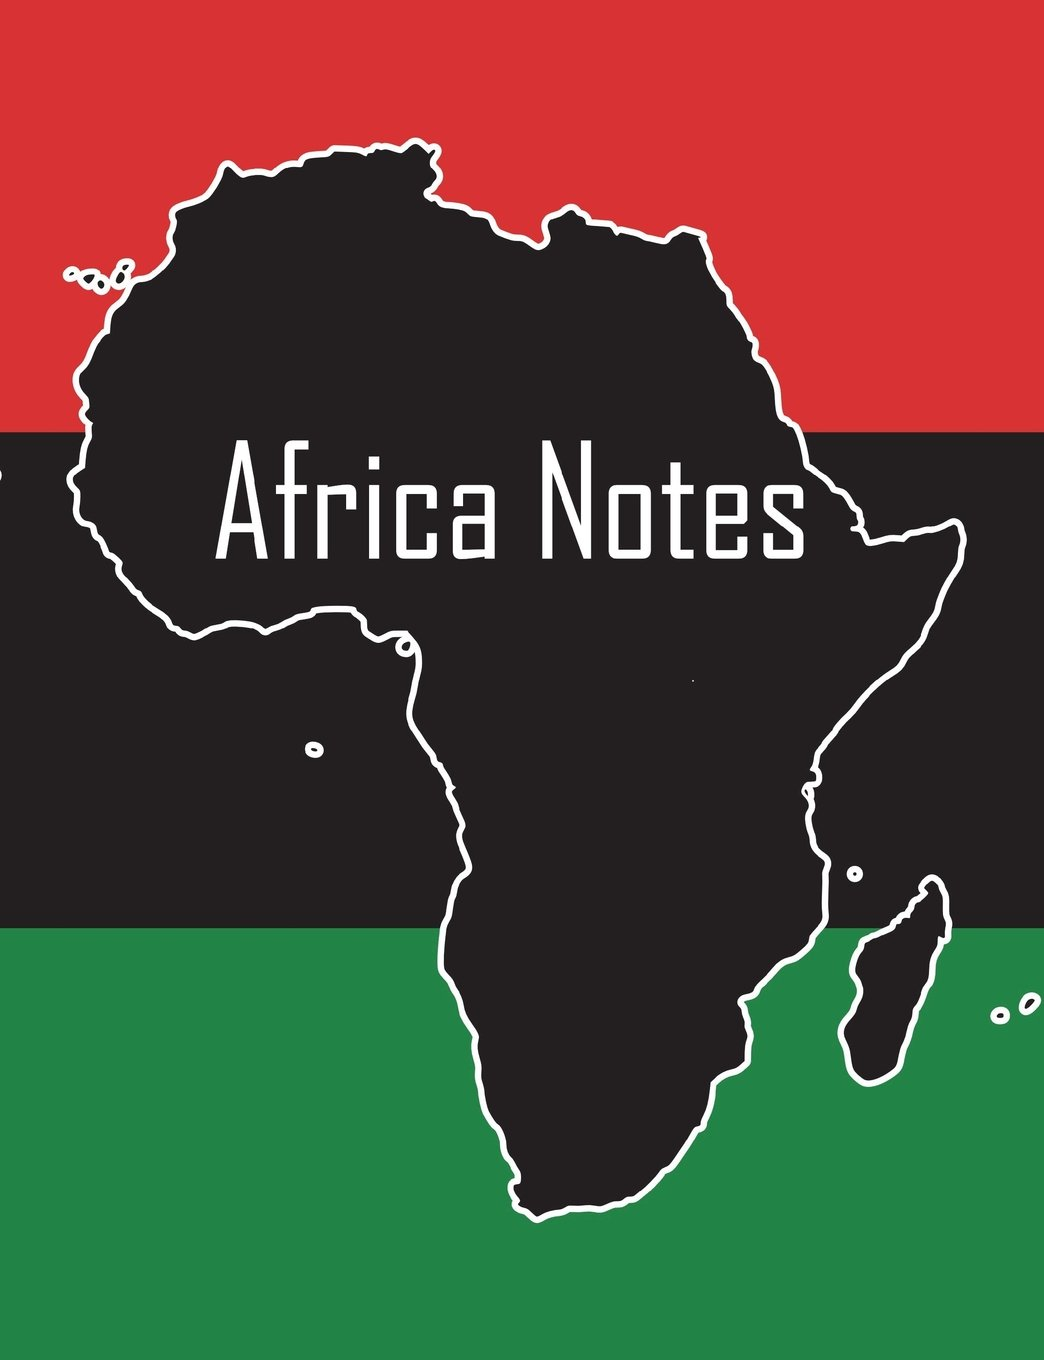 Africa Notes: African continent & Pan-African flag cover, 100 pages, 7.44x9.69 in., matte pdf epub